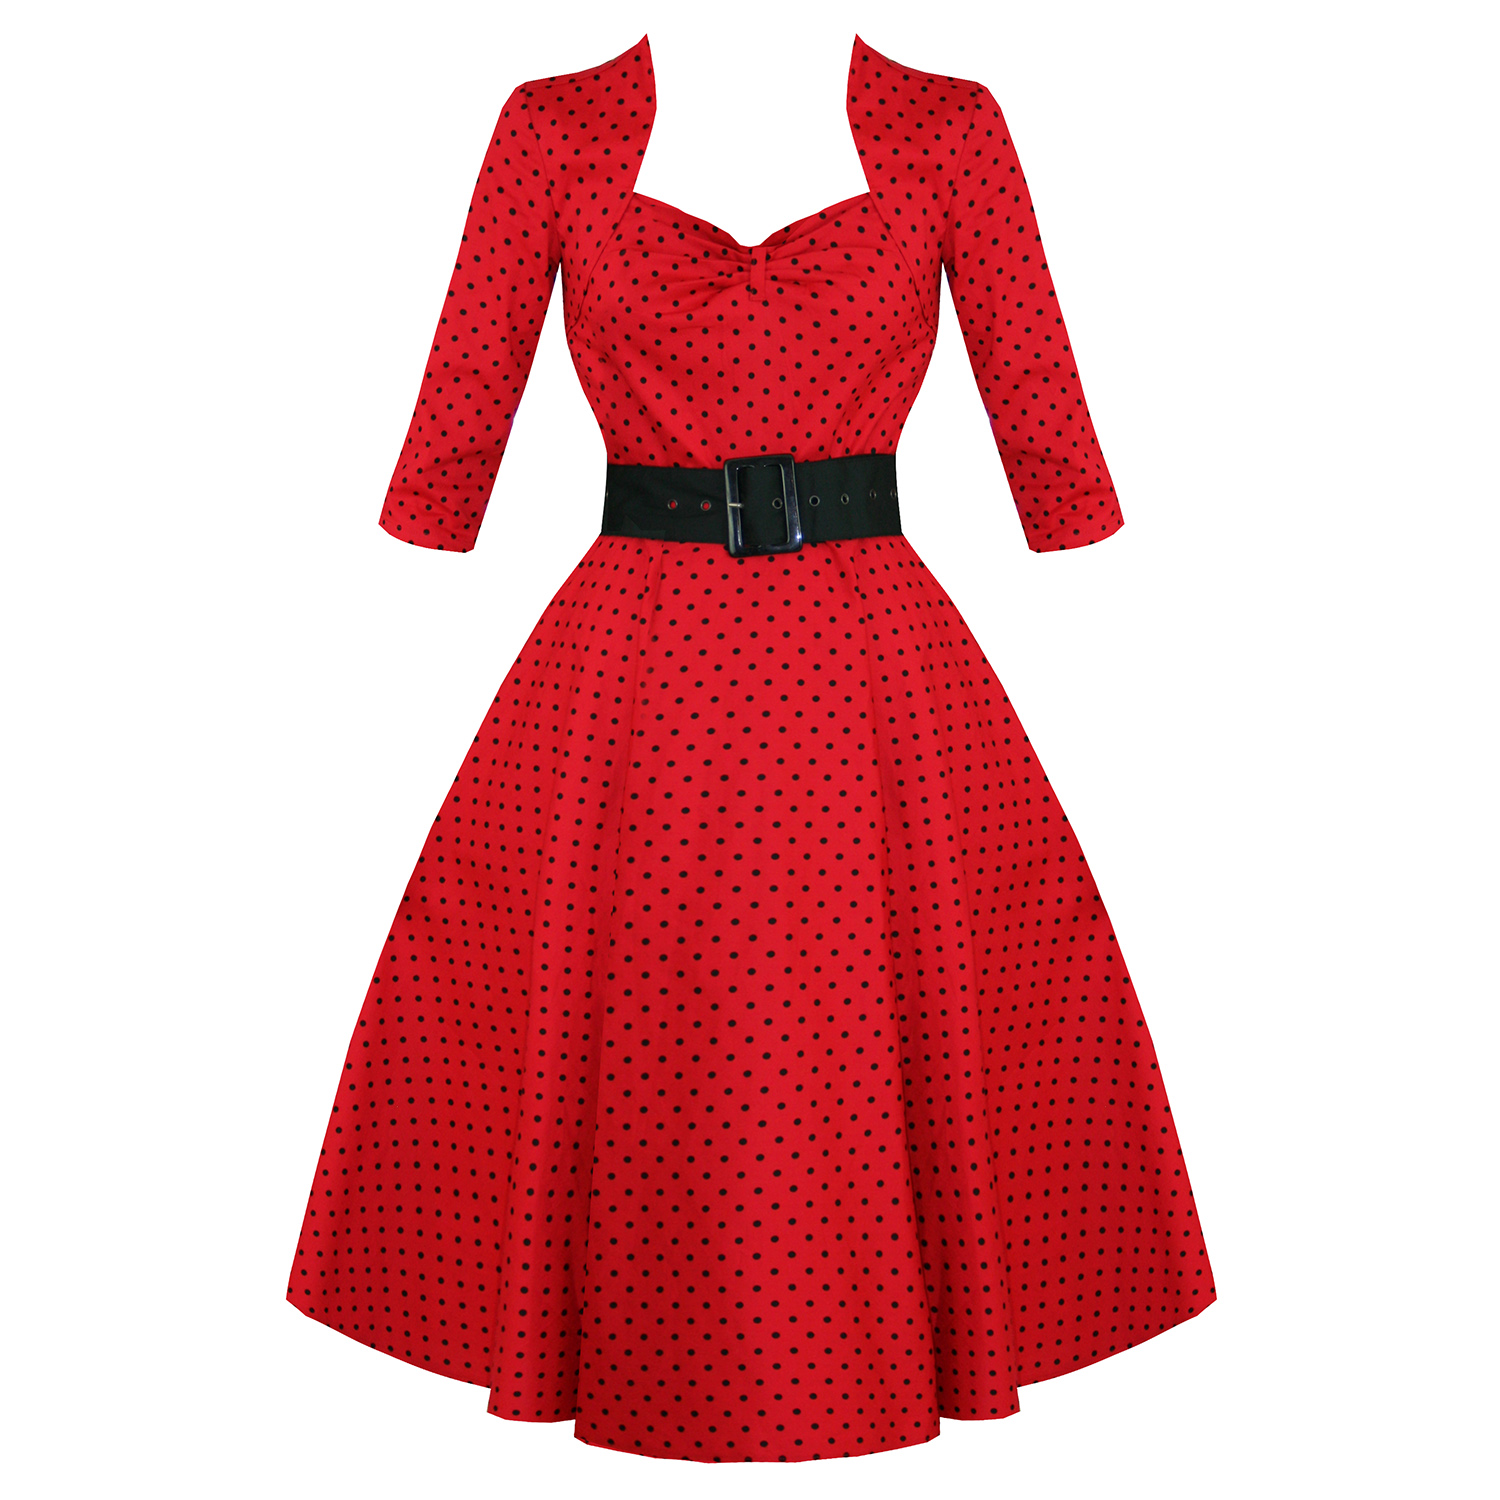 HELL BUNNY MOMO RED POLKA DOT 50S VINTAGE 3/4 SLEEVE FLARED SWING ...